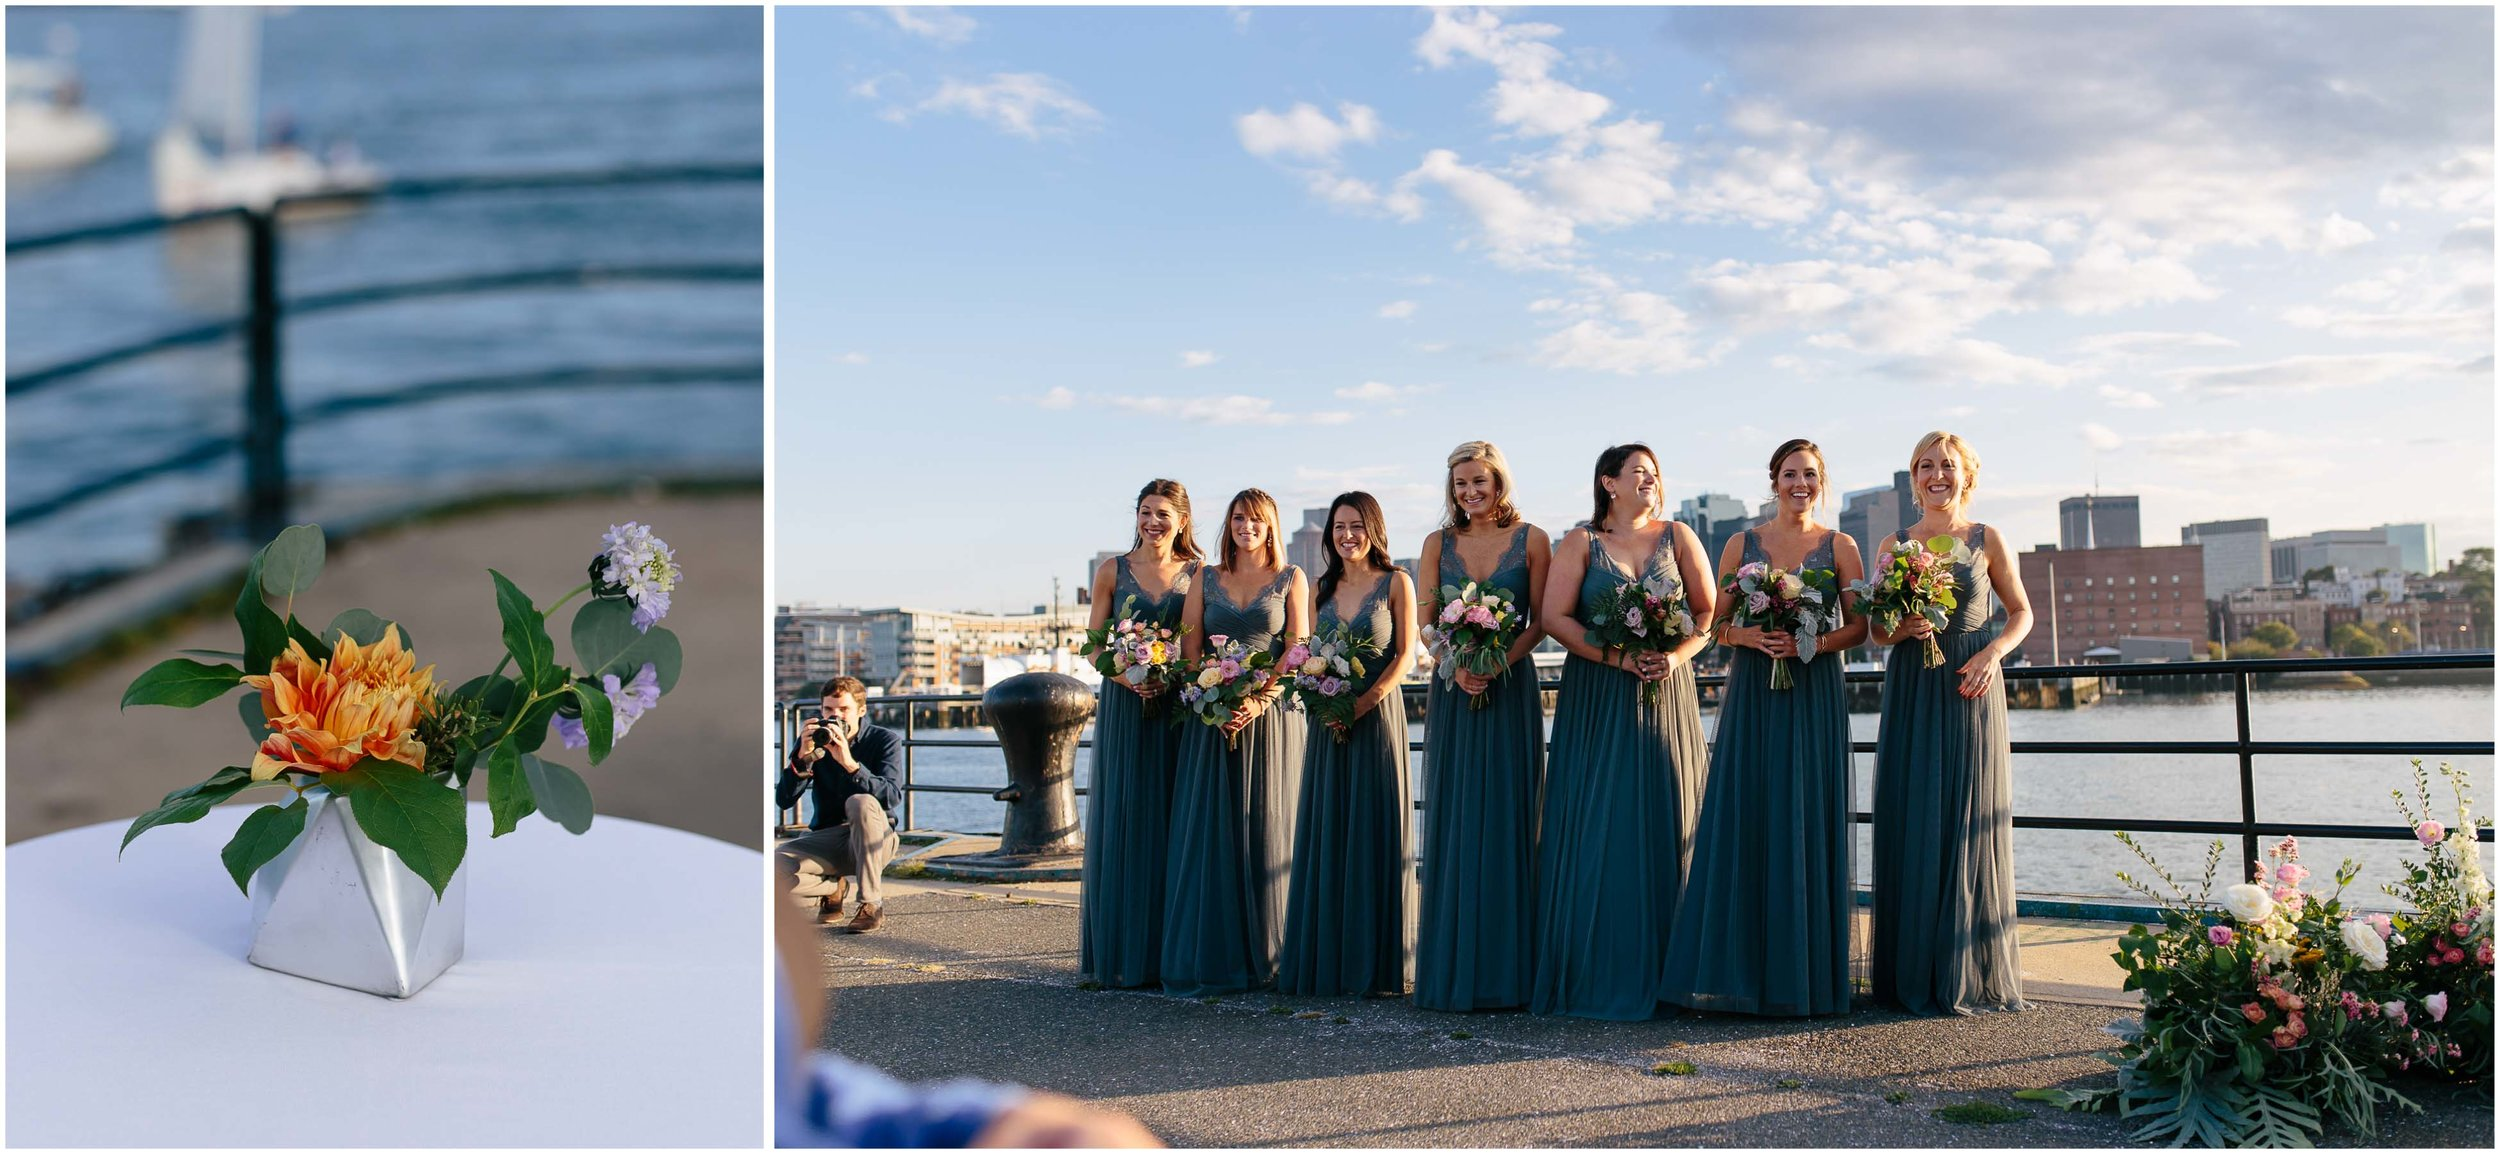 Nautical Massachusetts Jewish Wedding in the Boston Navy Yard ceremony